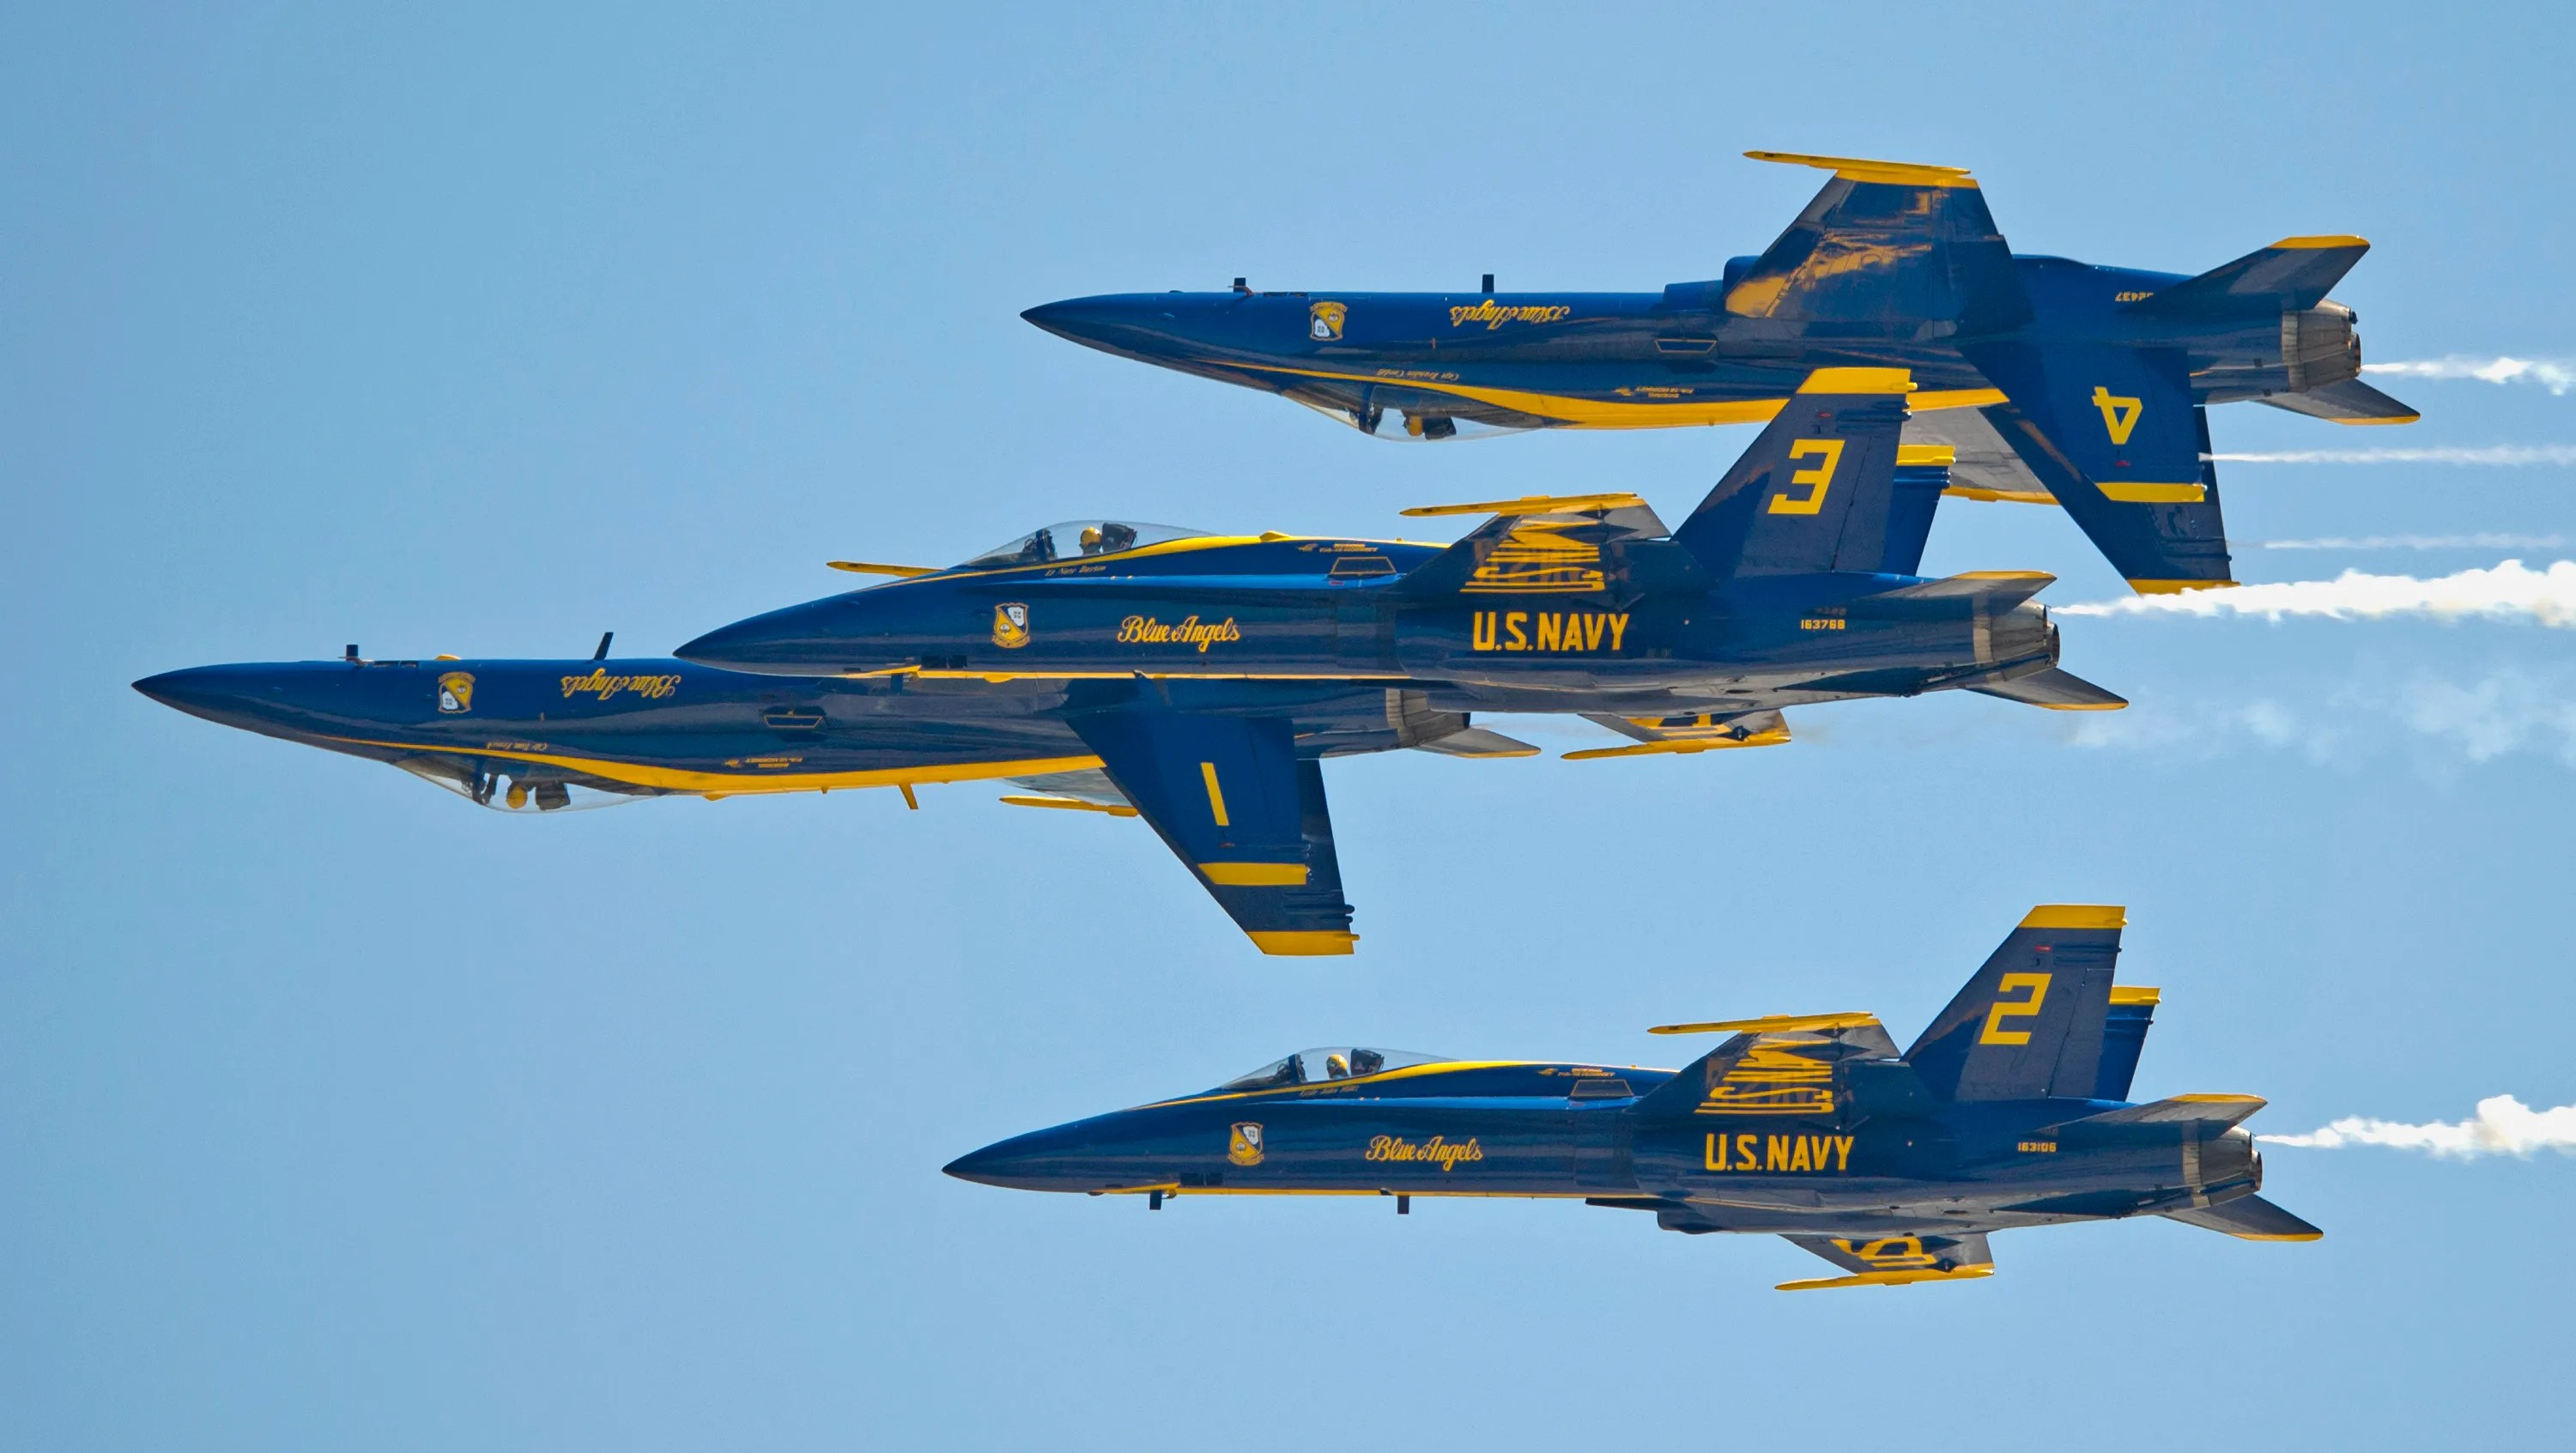 Navy's Blue Angels returning to air with full 2014 lineup